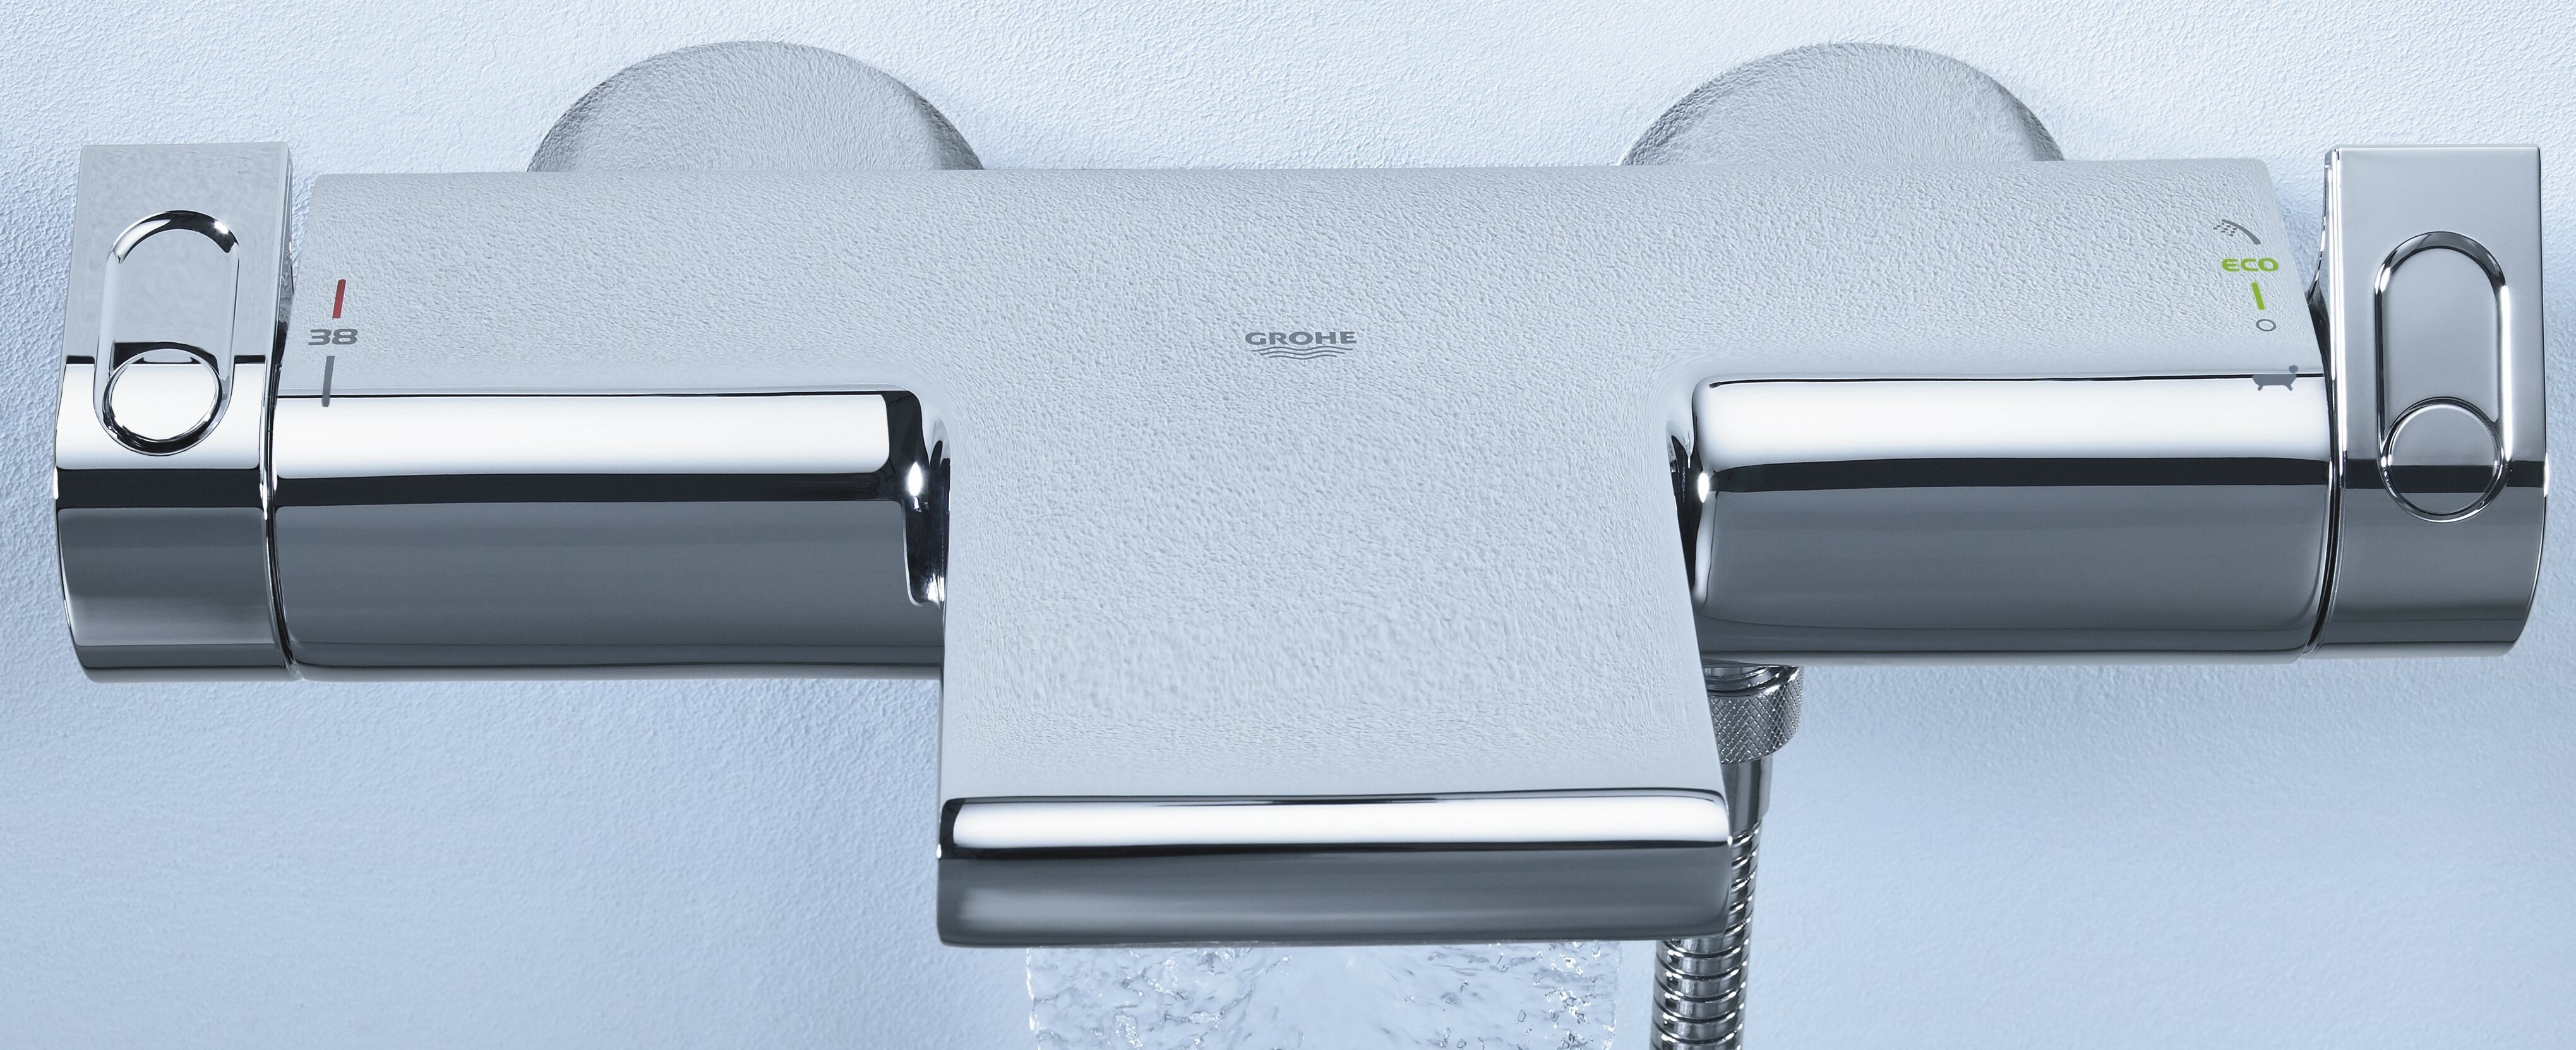 Grohe Grohtherm Thermostatic Tub and Shower Faucet with TurboStat ...